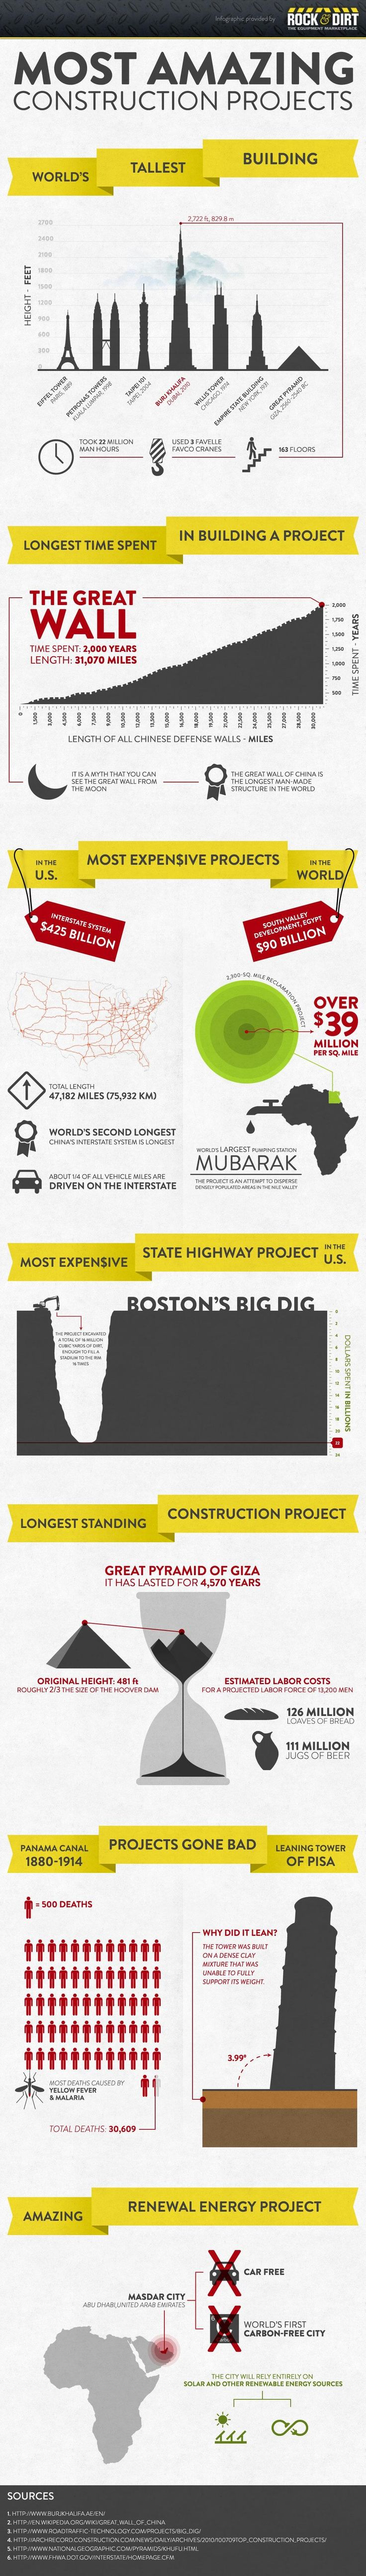 A snapshot of the world's amazing construction feats (in one flashy infographic) | Building Design + Construction